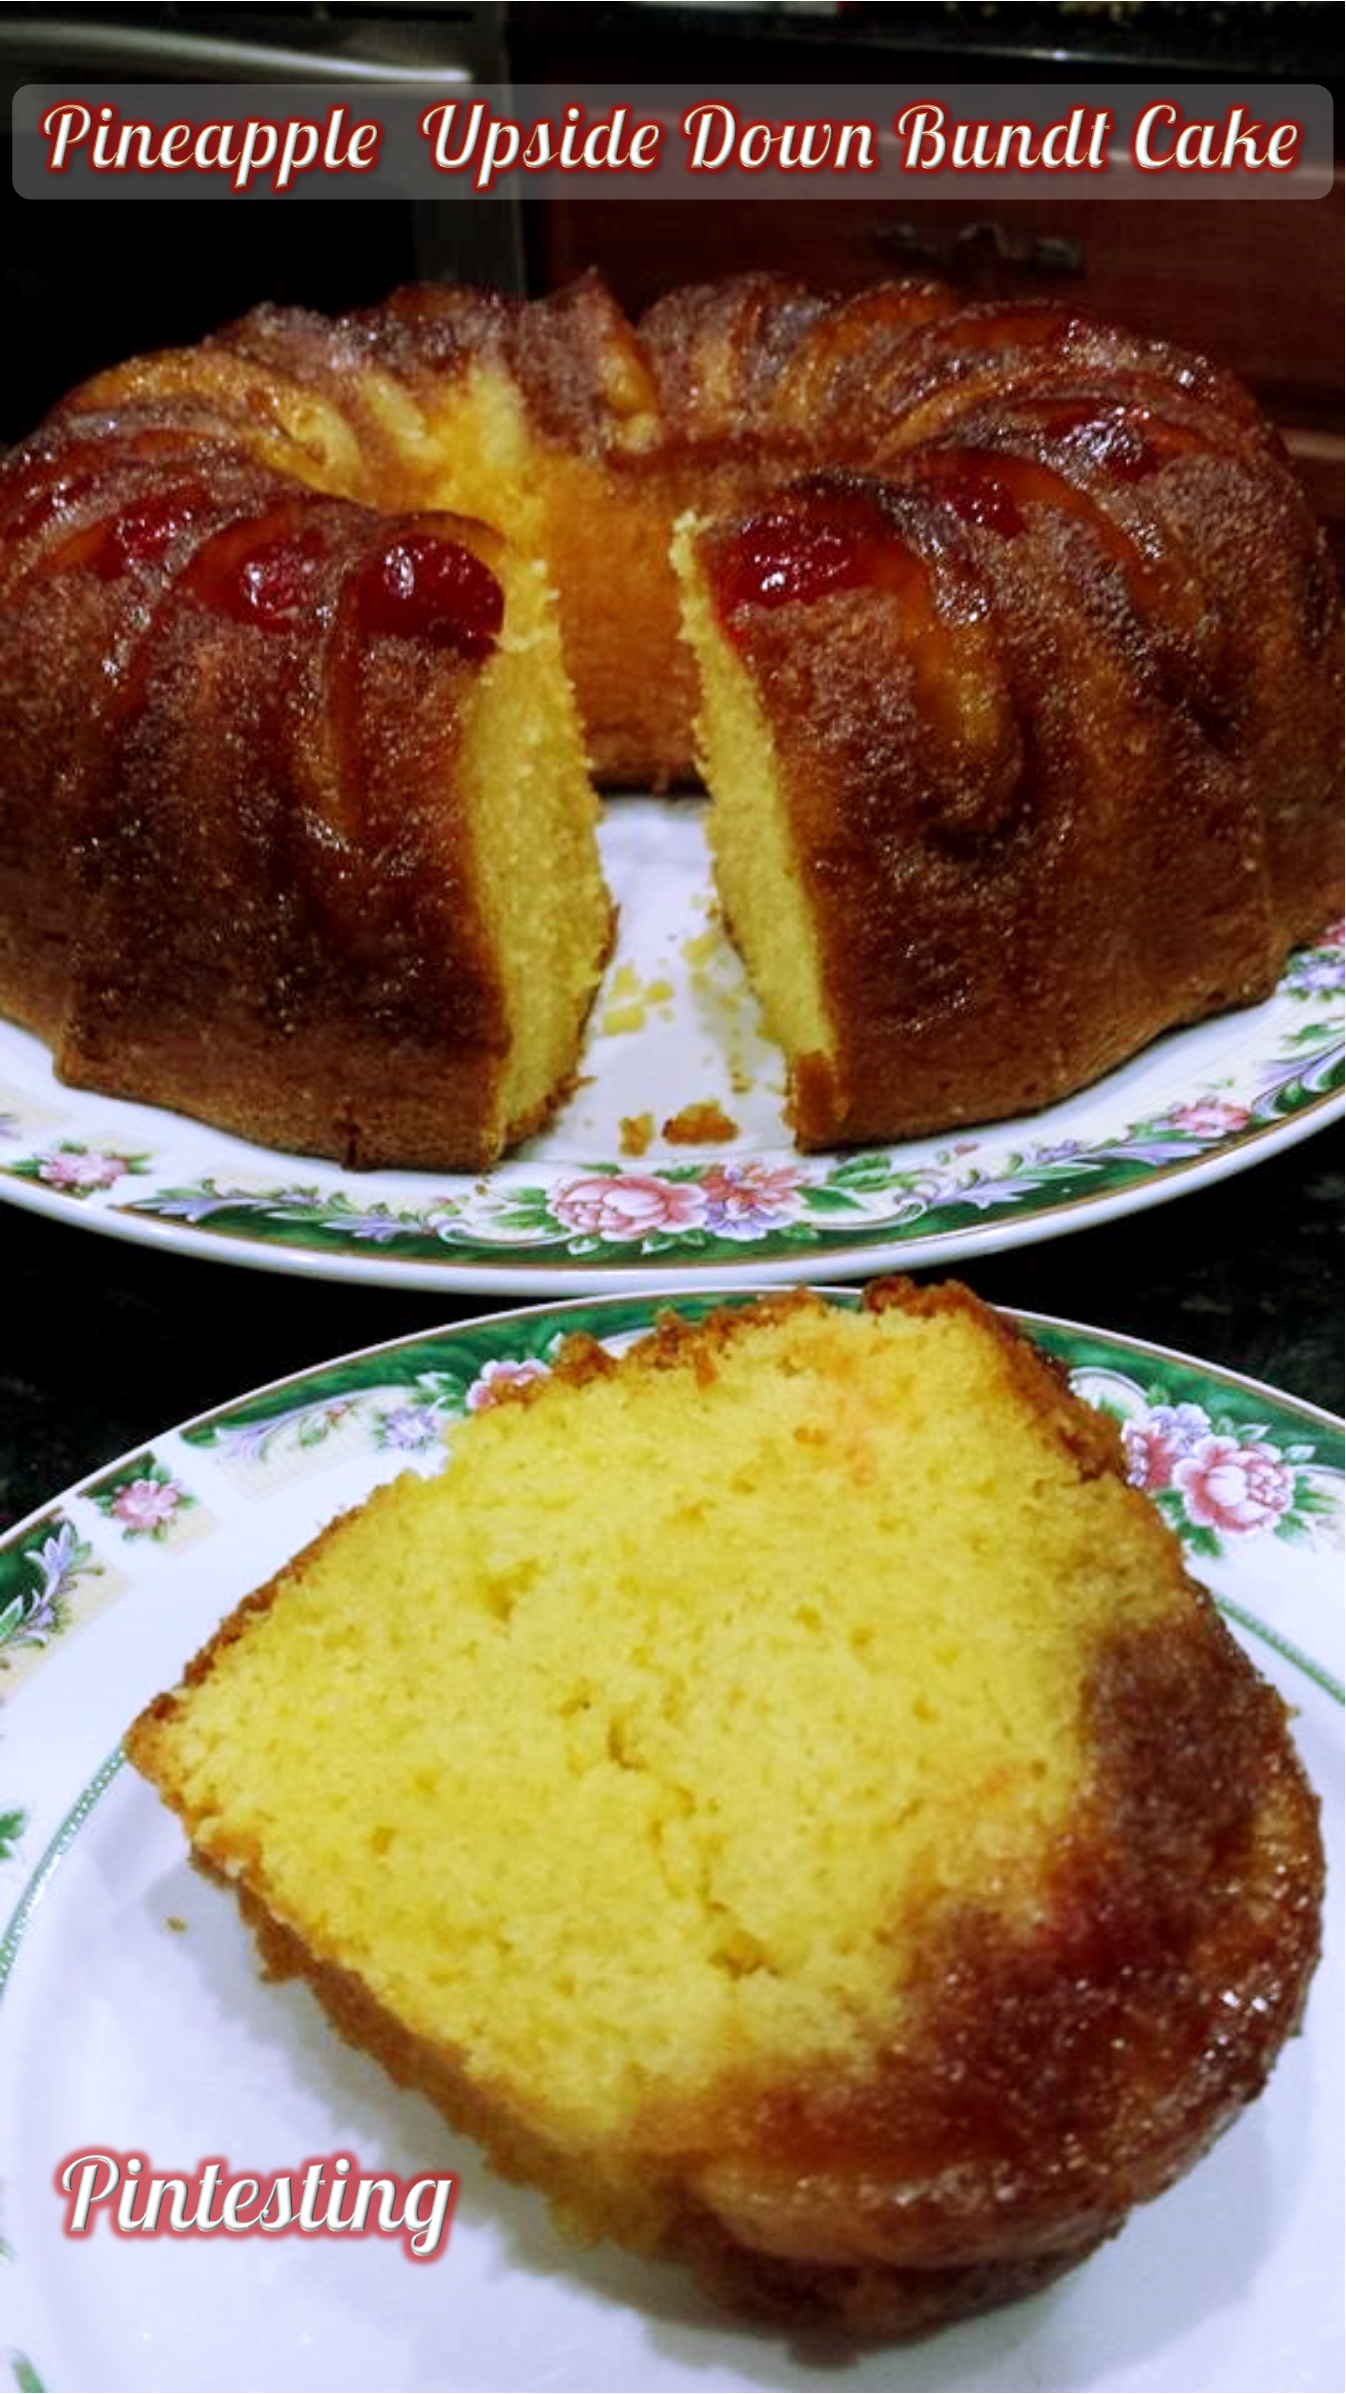 Pineapple Upside Down Bundt Cake Pintesting